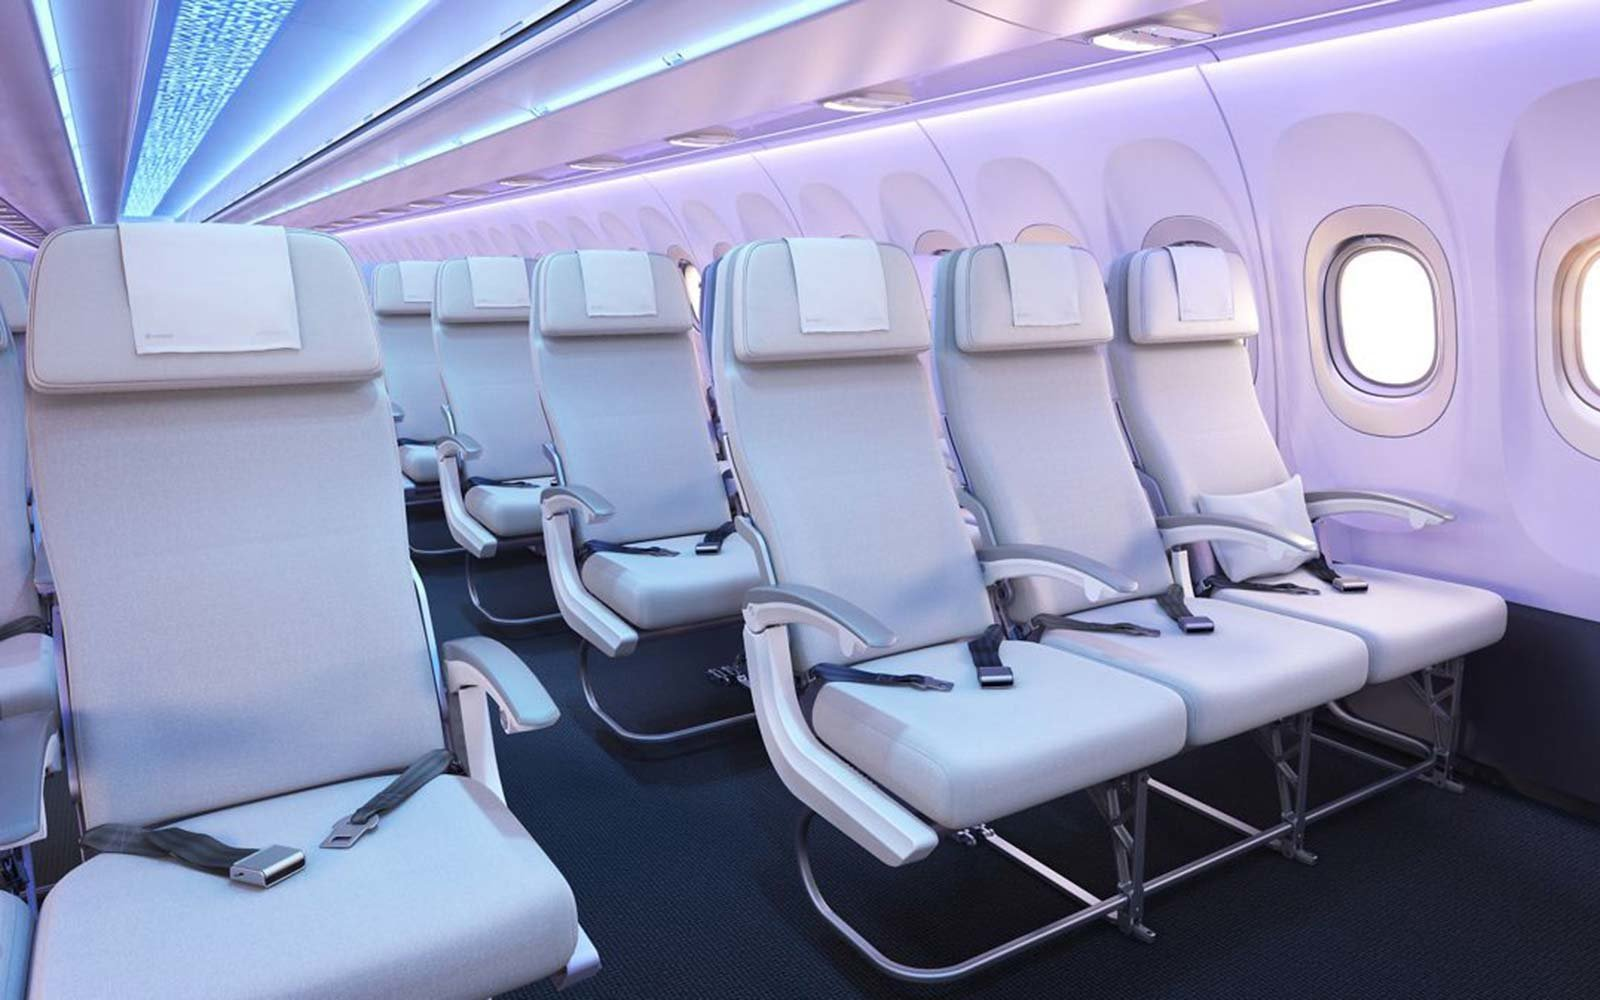 Airbus Reveals Design To Give Passengers More Room